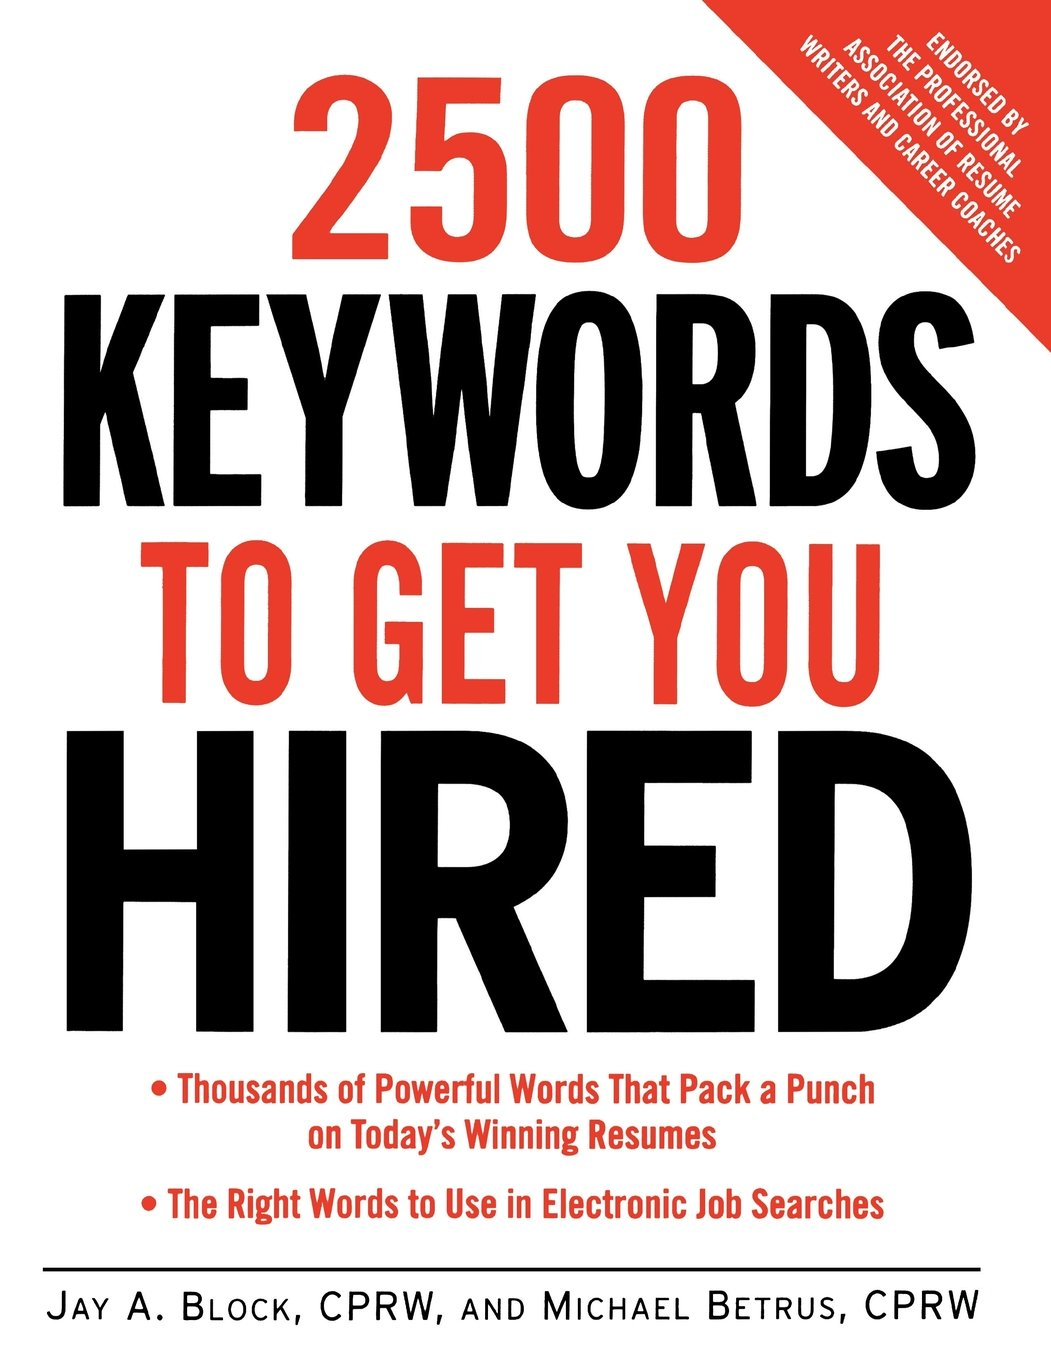 buy resume for writing keywords keywords to get you hired